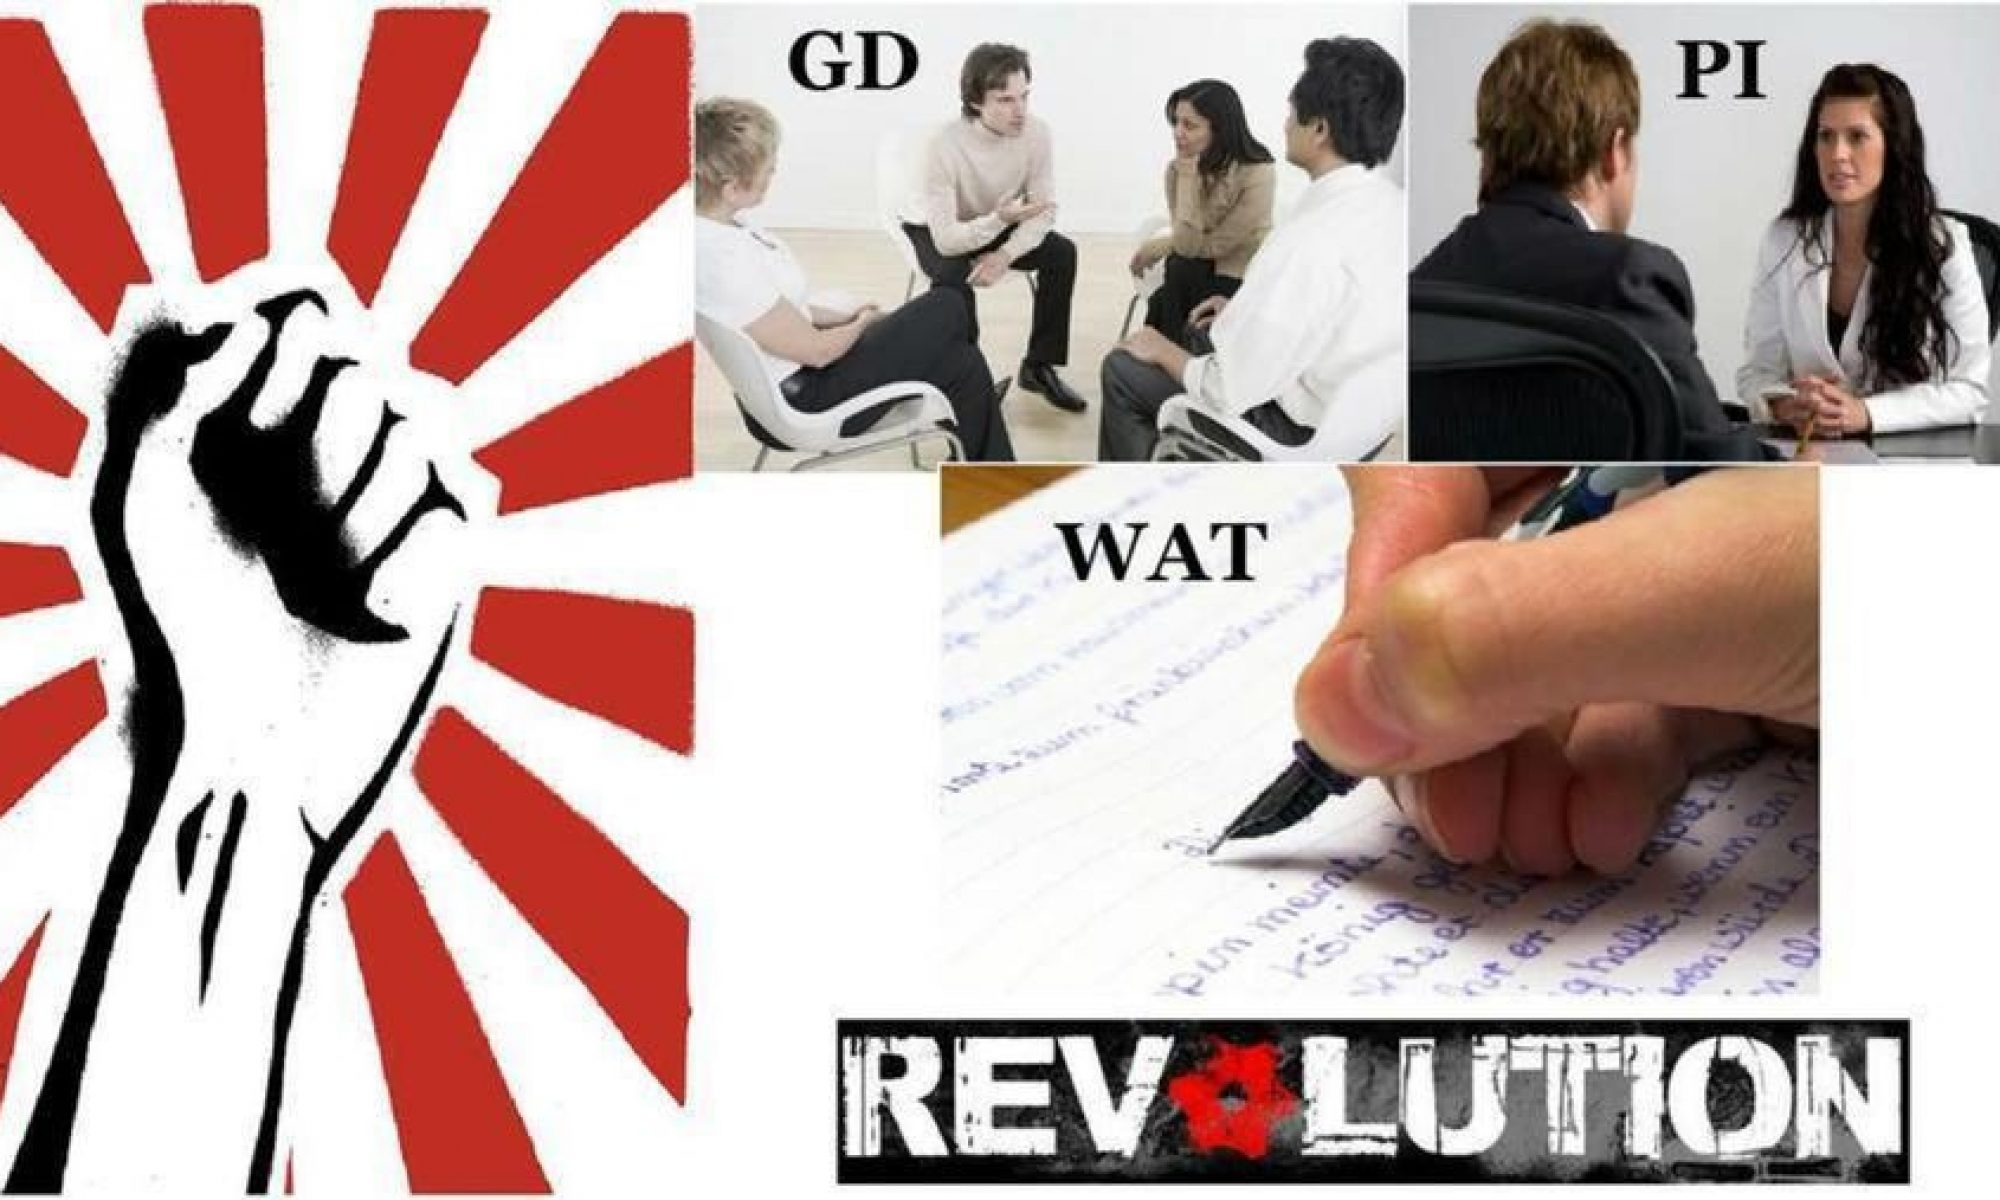 GD WAT PI Revolution